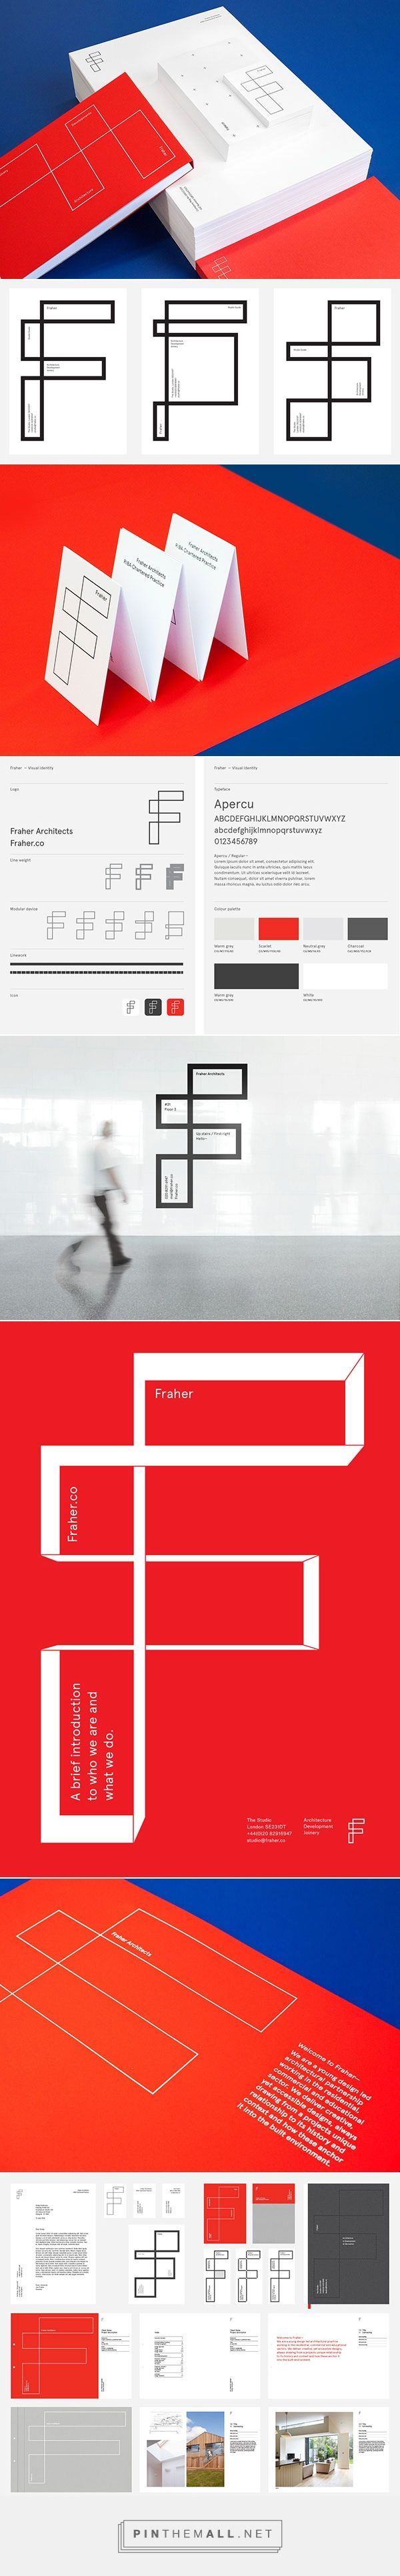 Fraher Architects by Freytag Anderson